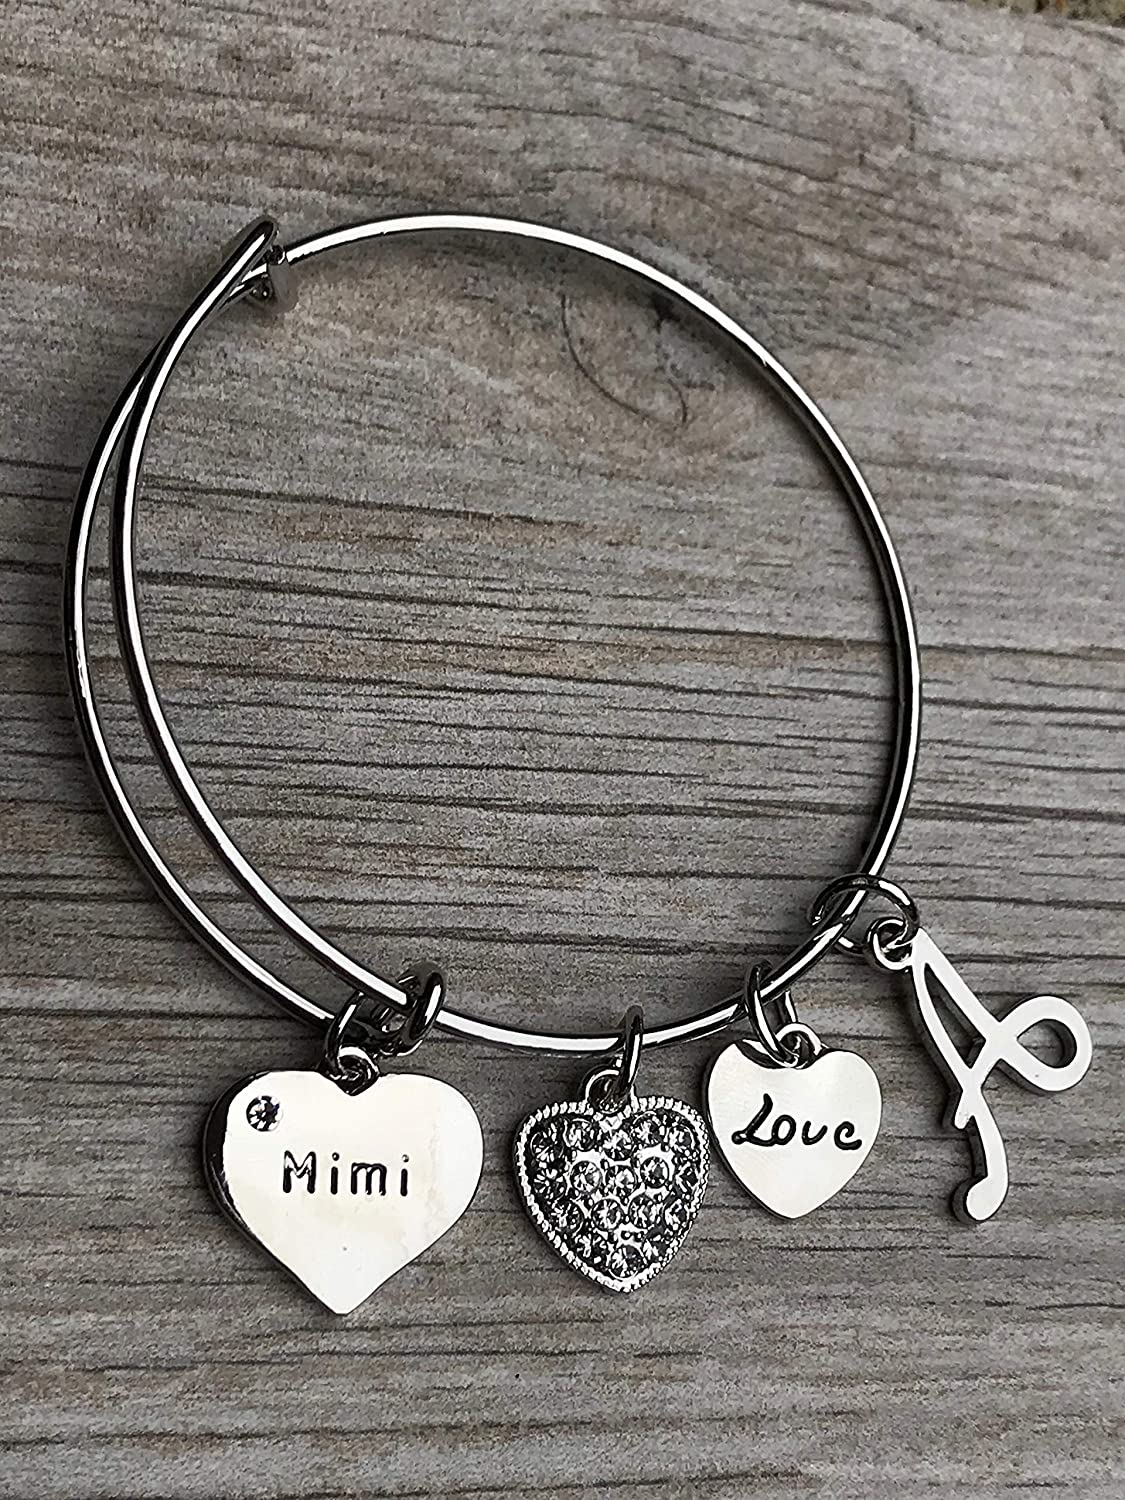 Personalized Mimi Bangle Bracelet Los Angeles Mall with Ranking TOP2 Letter Charm Custom